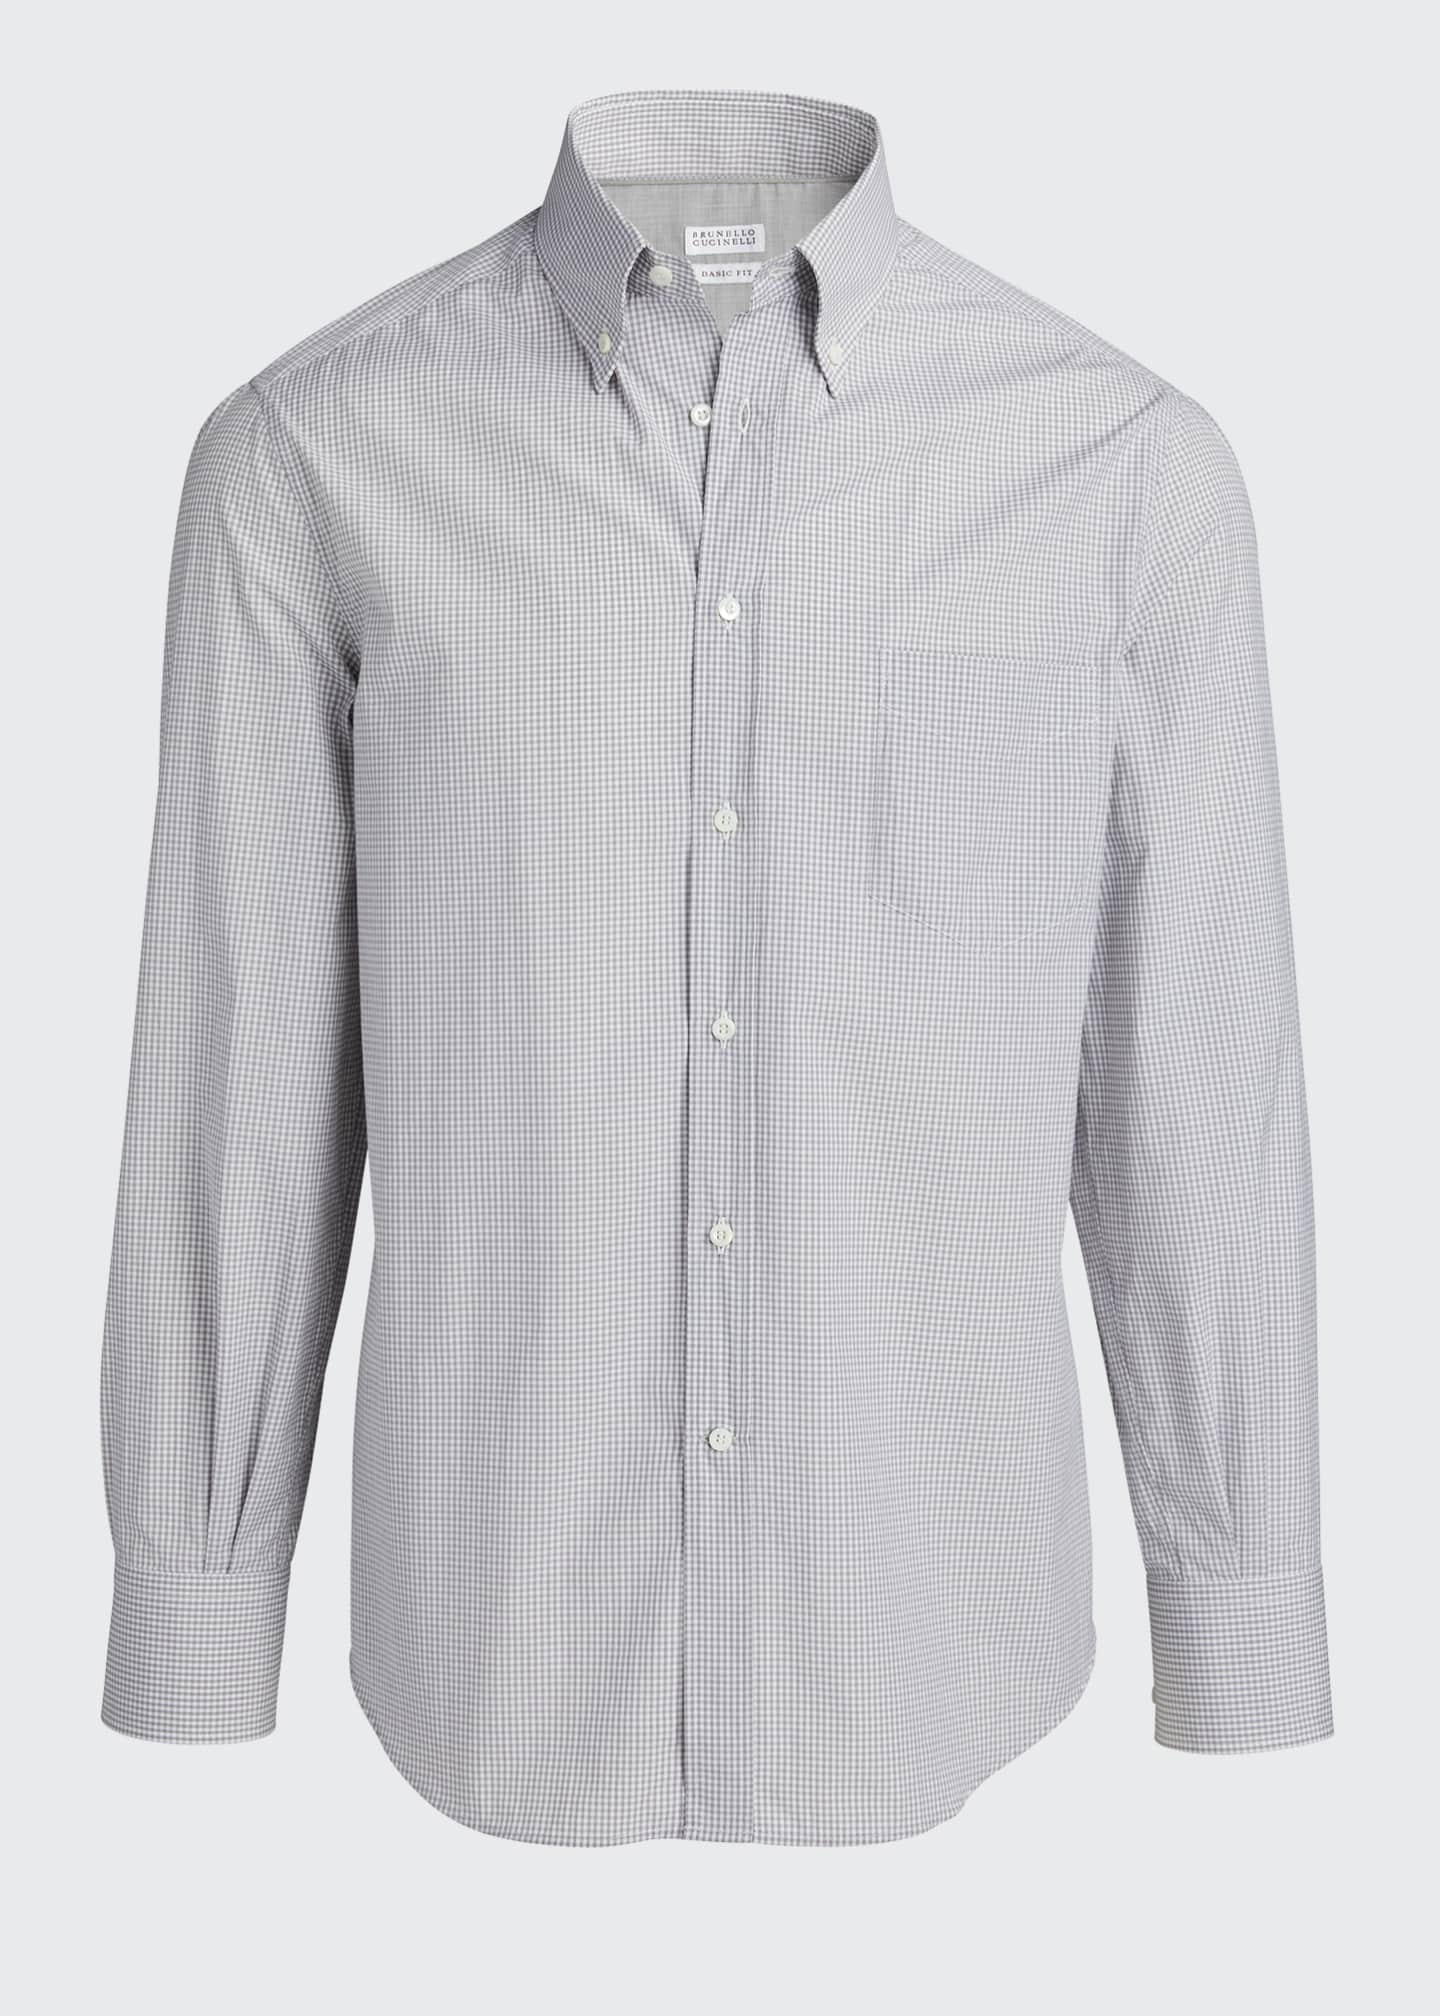 Image 5 of 5: Men's Micro-Check Sport Shirt